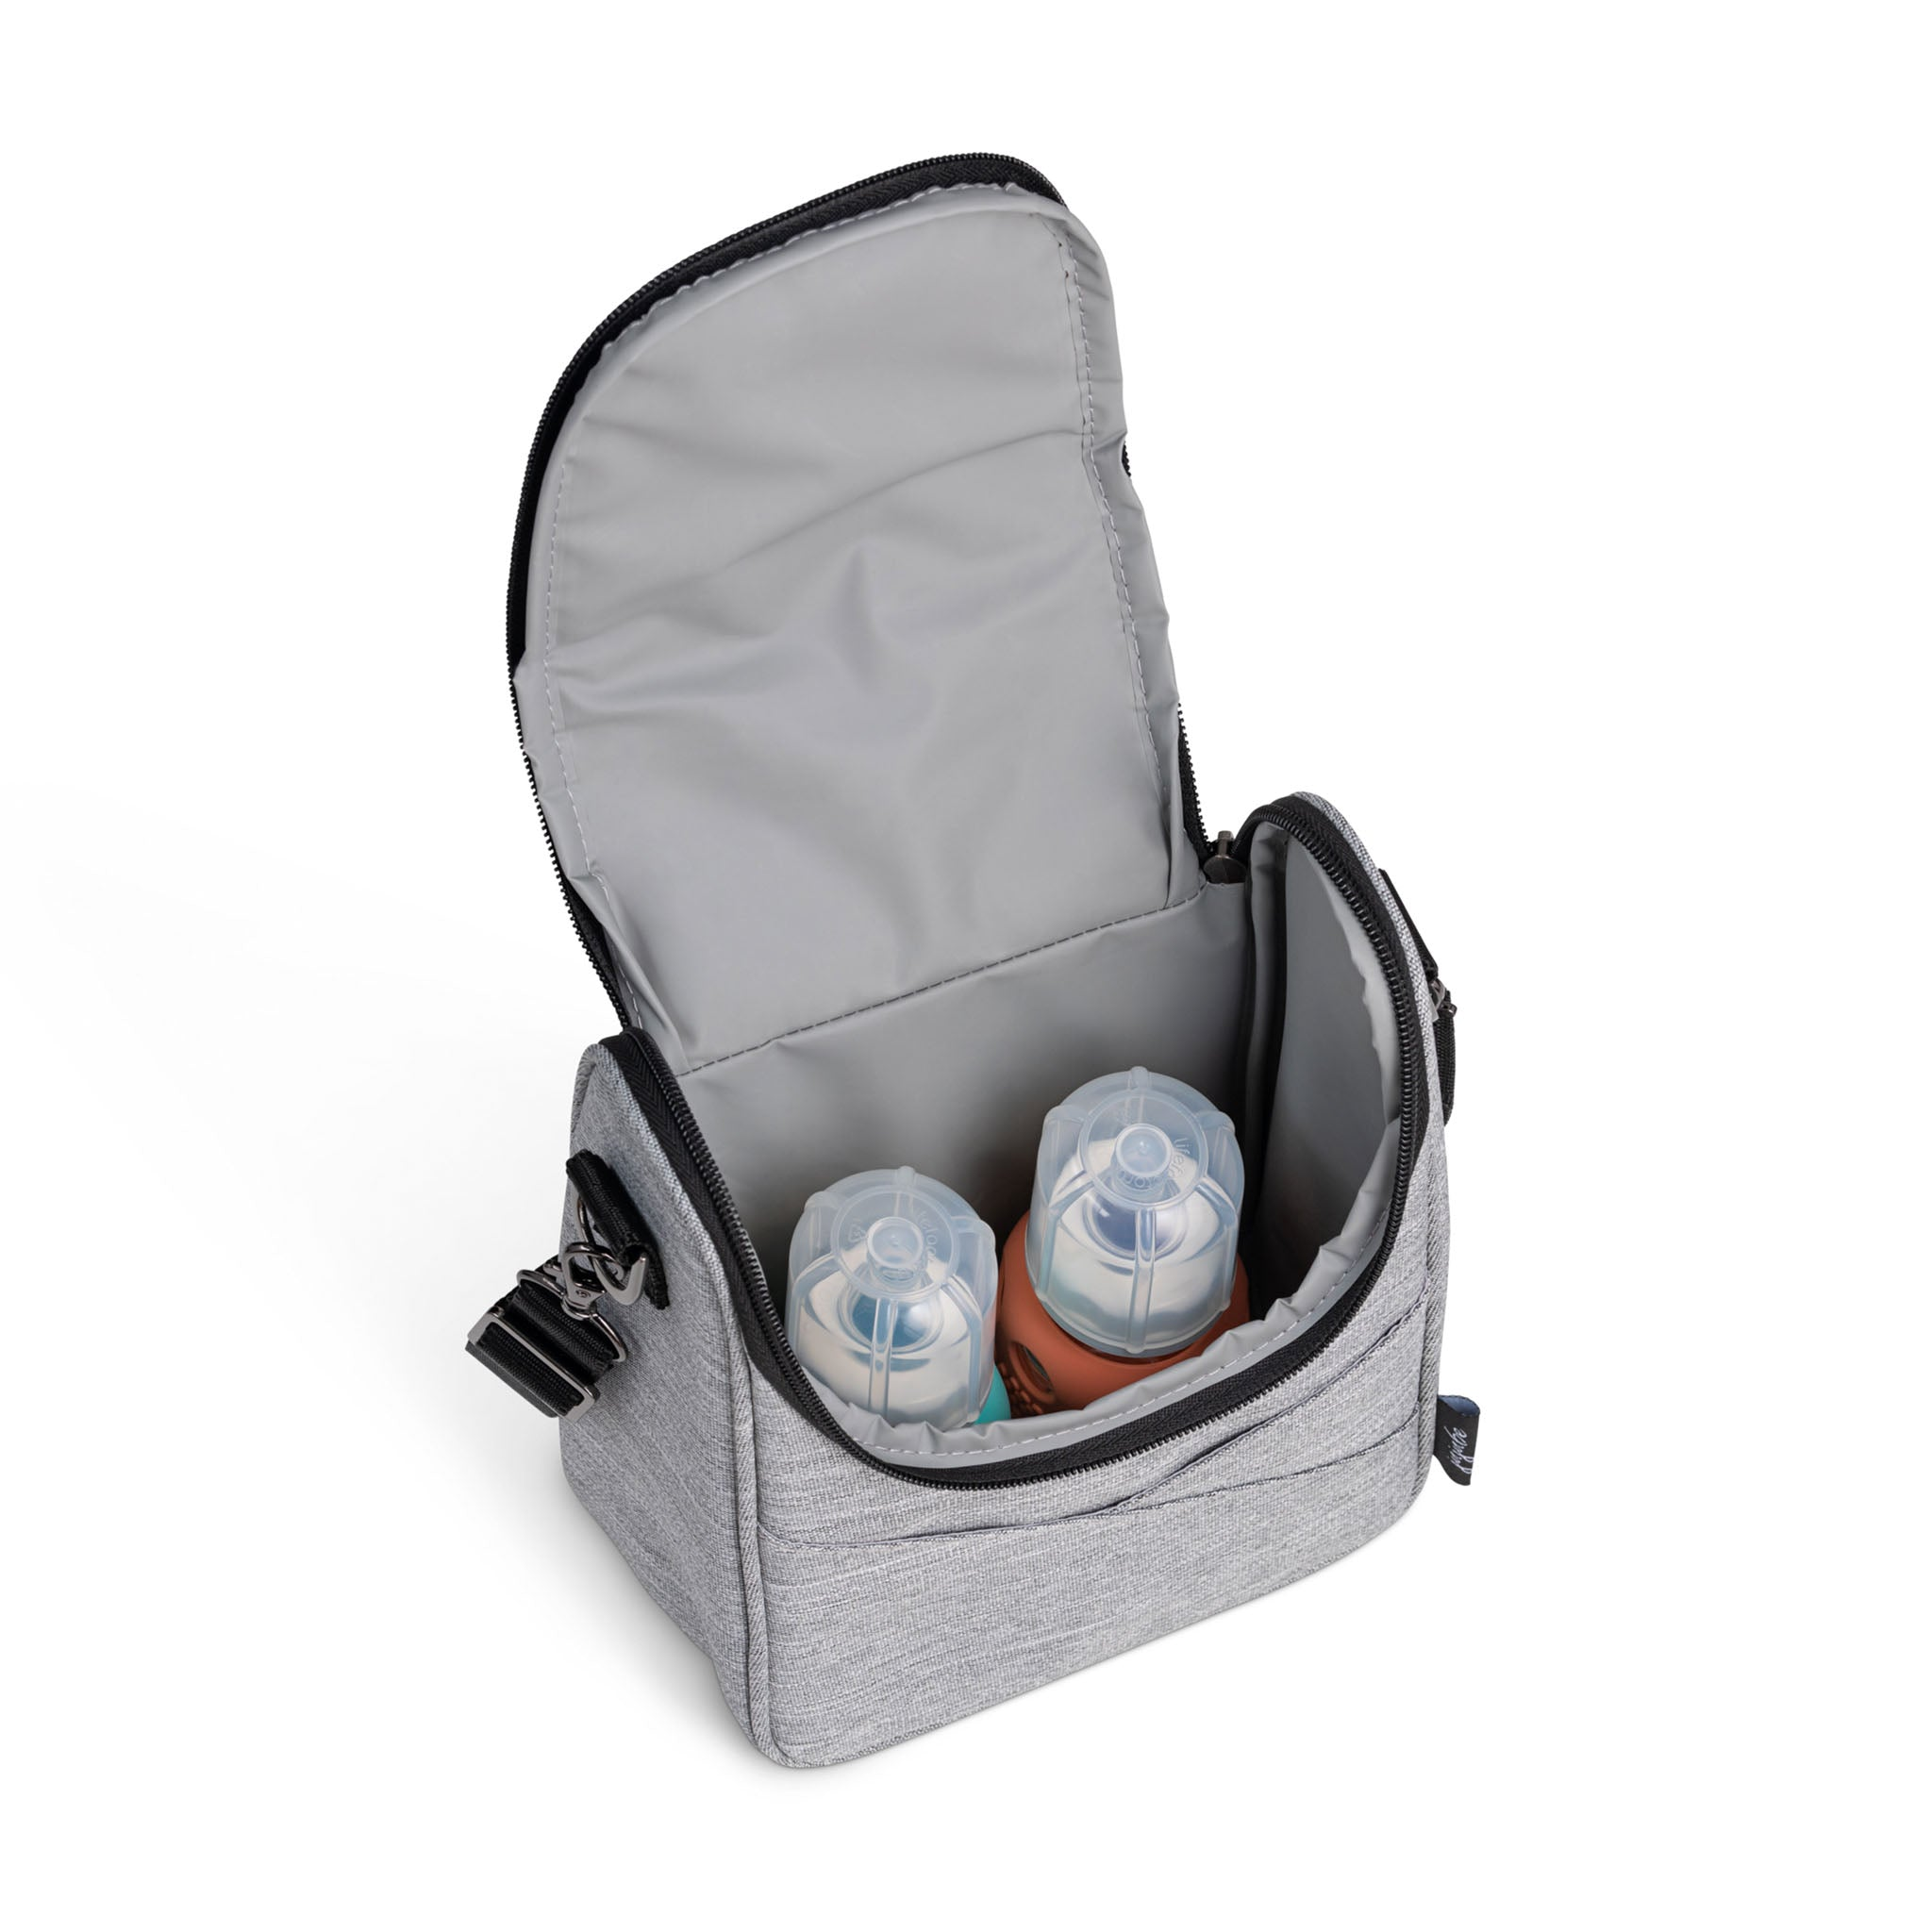 Insulated Milk Bottle Cooler Lunch Bag